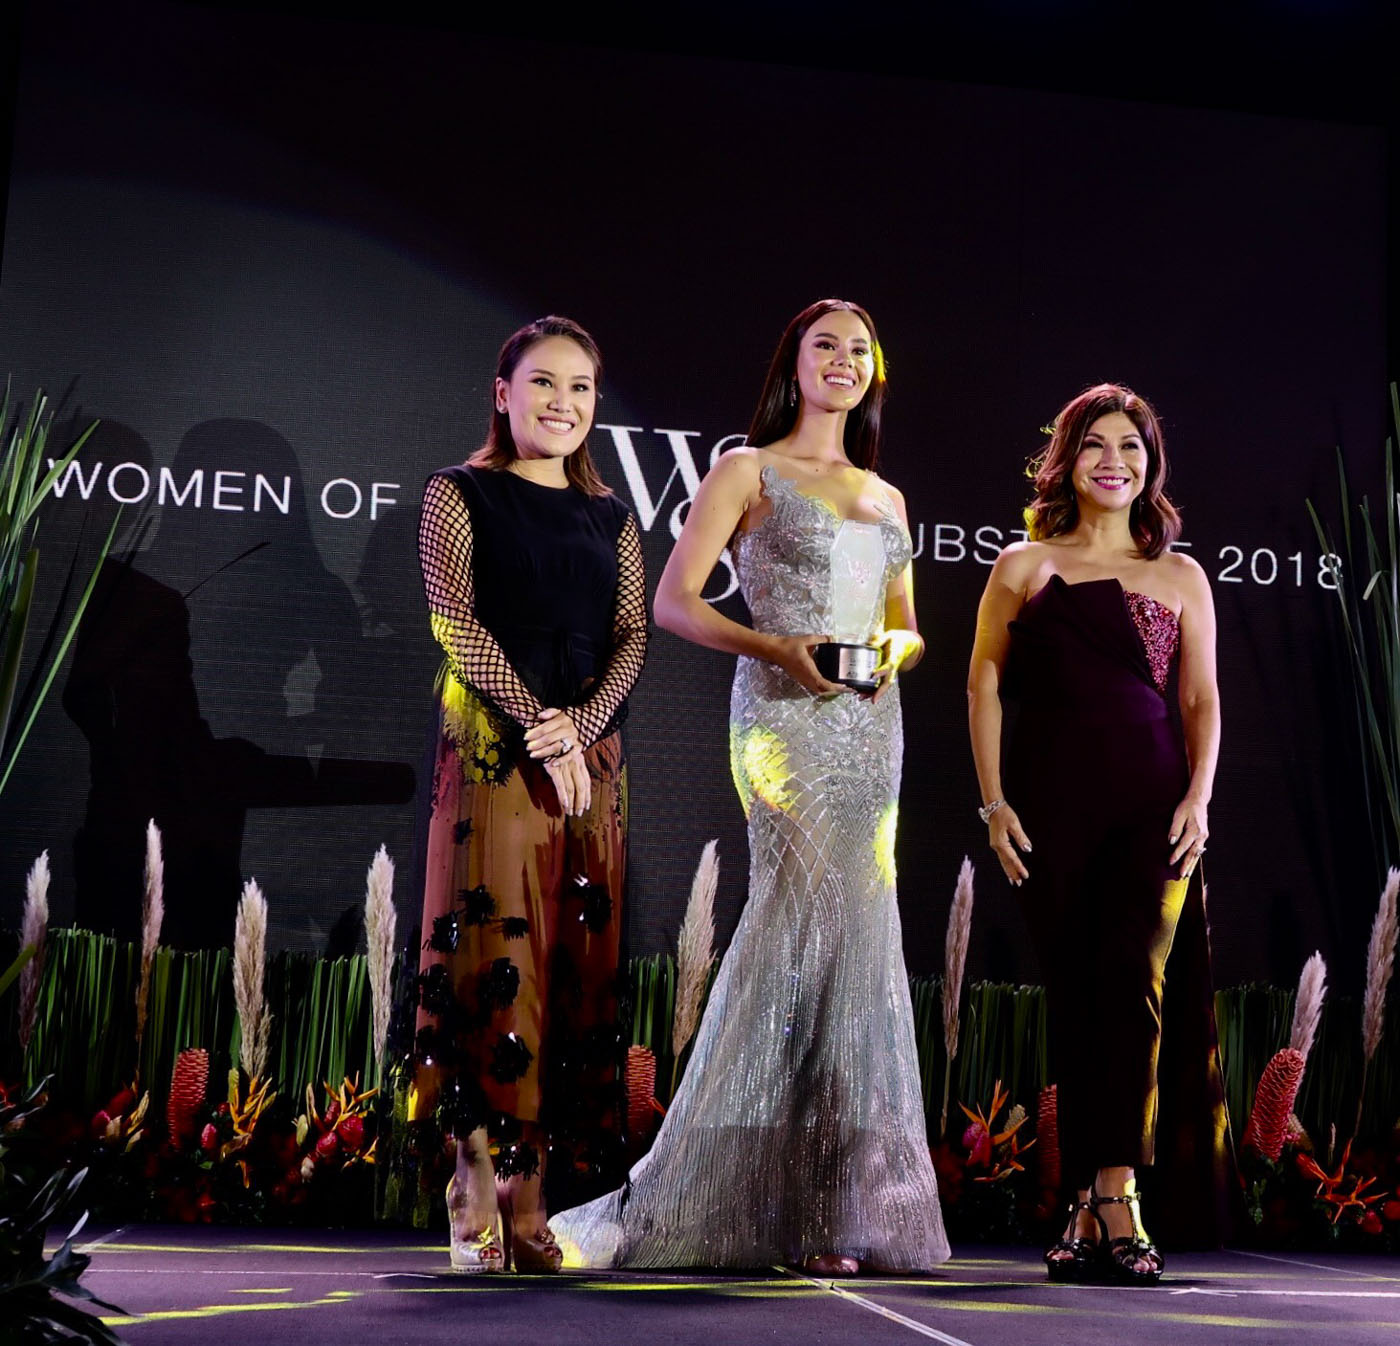 STYLE ICON. Catriona Gray receives the award from People Asia's Joanne Ramirez and Dr Aivee Teo.